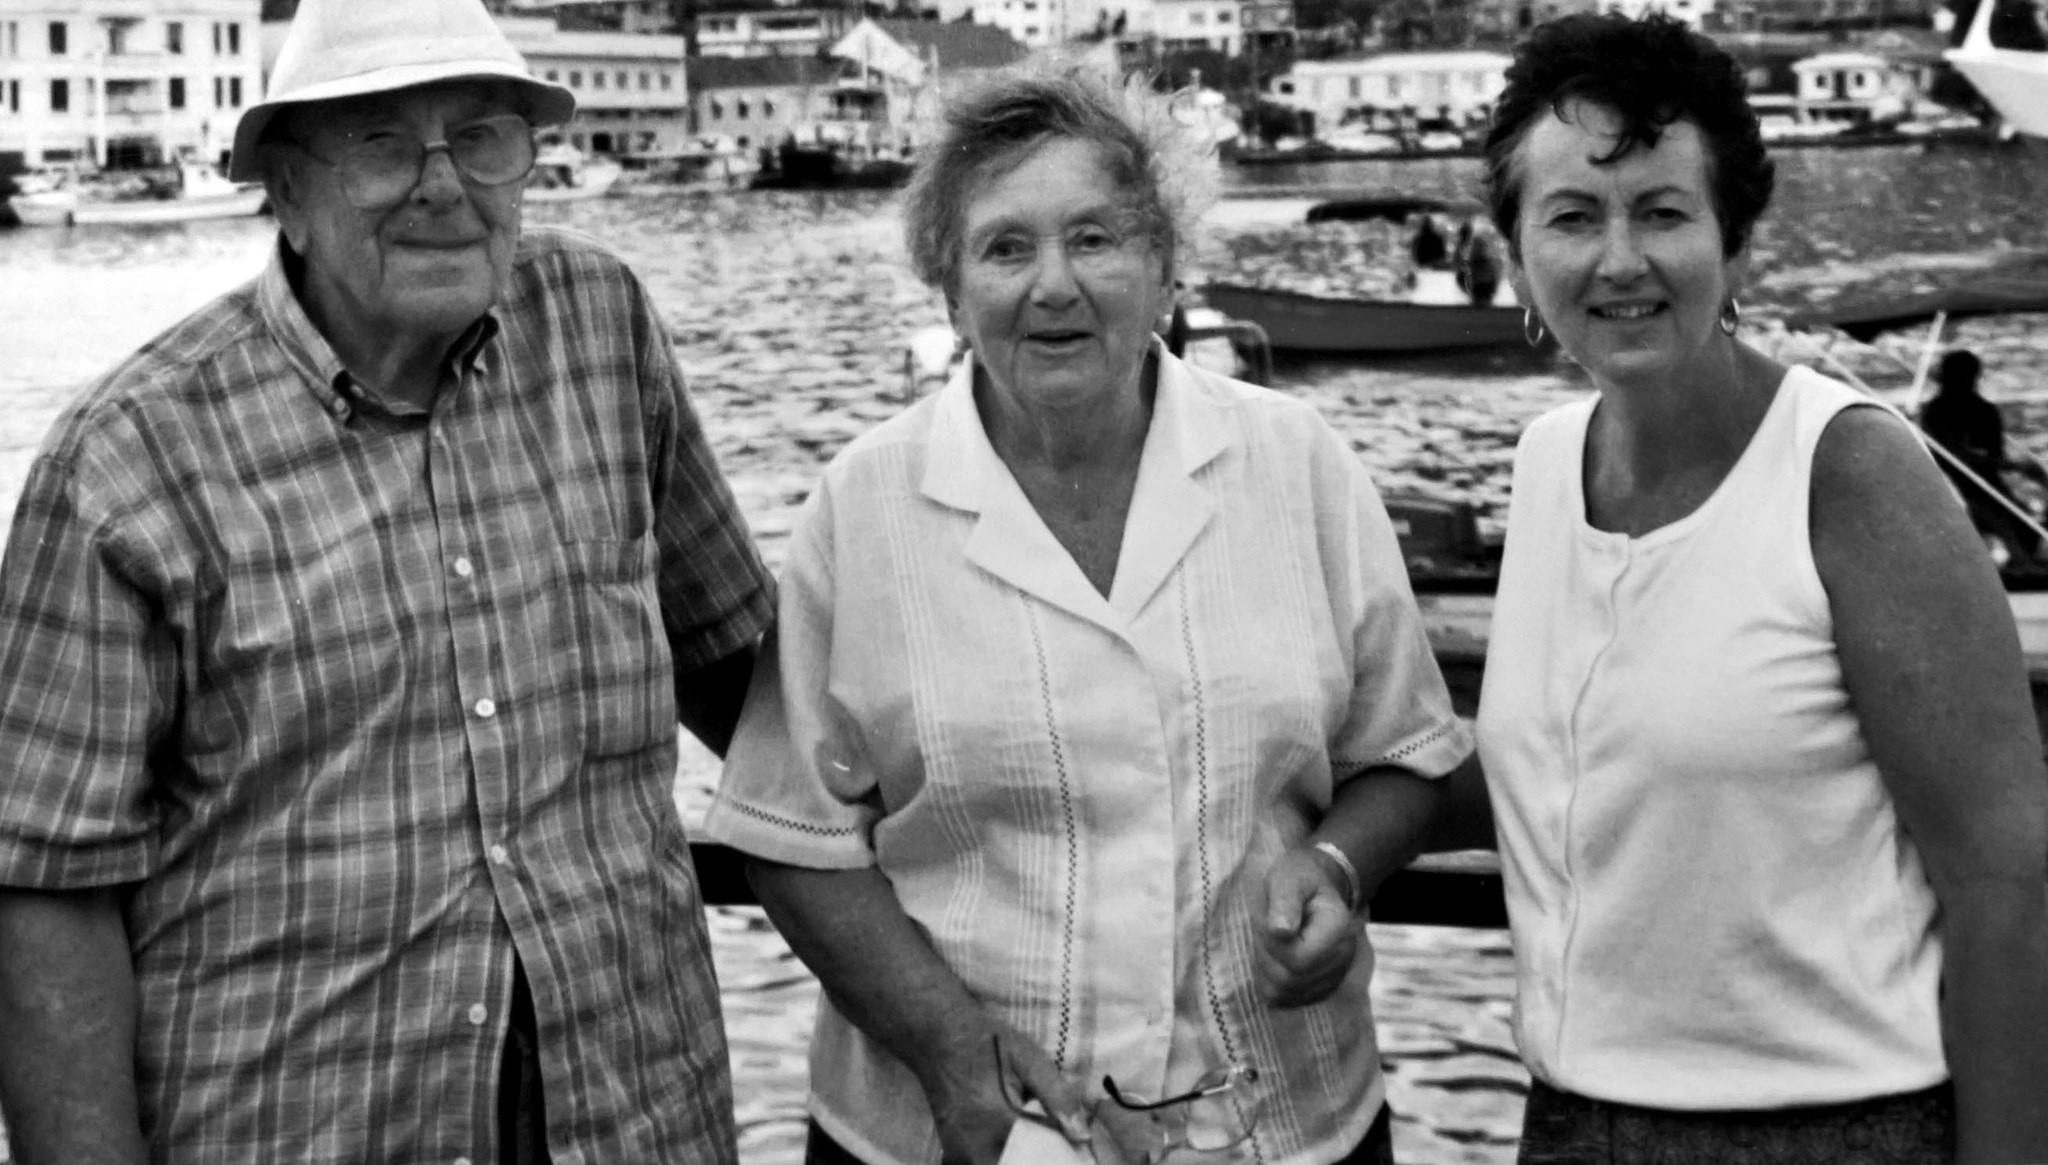 Jenny and her parents on an Amazon trip (with Mary Thomas) before MS...